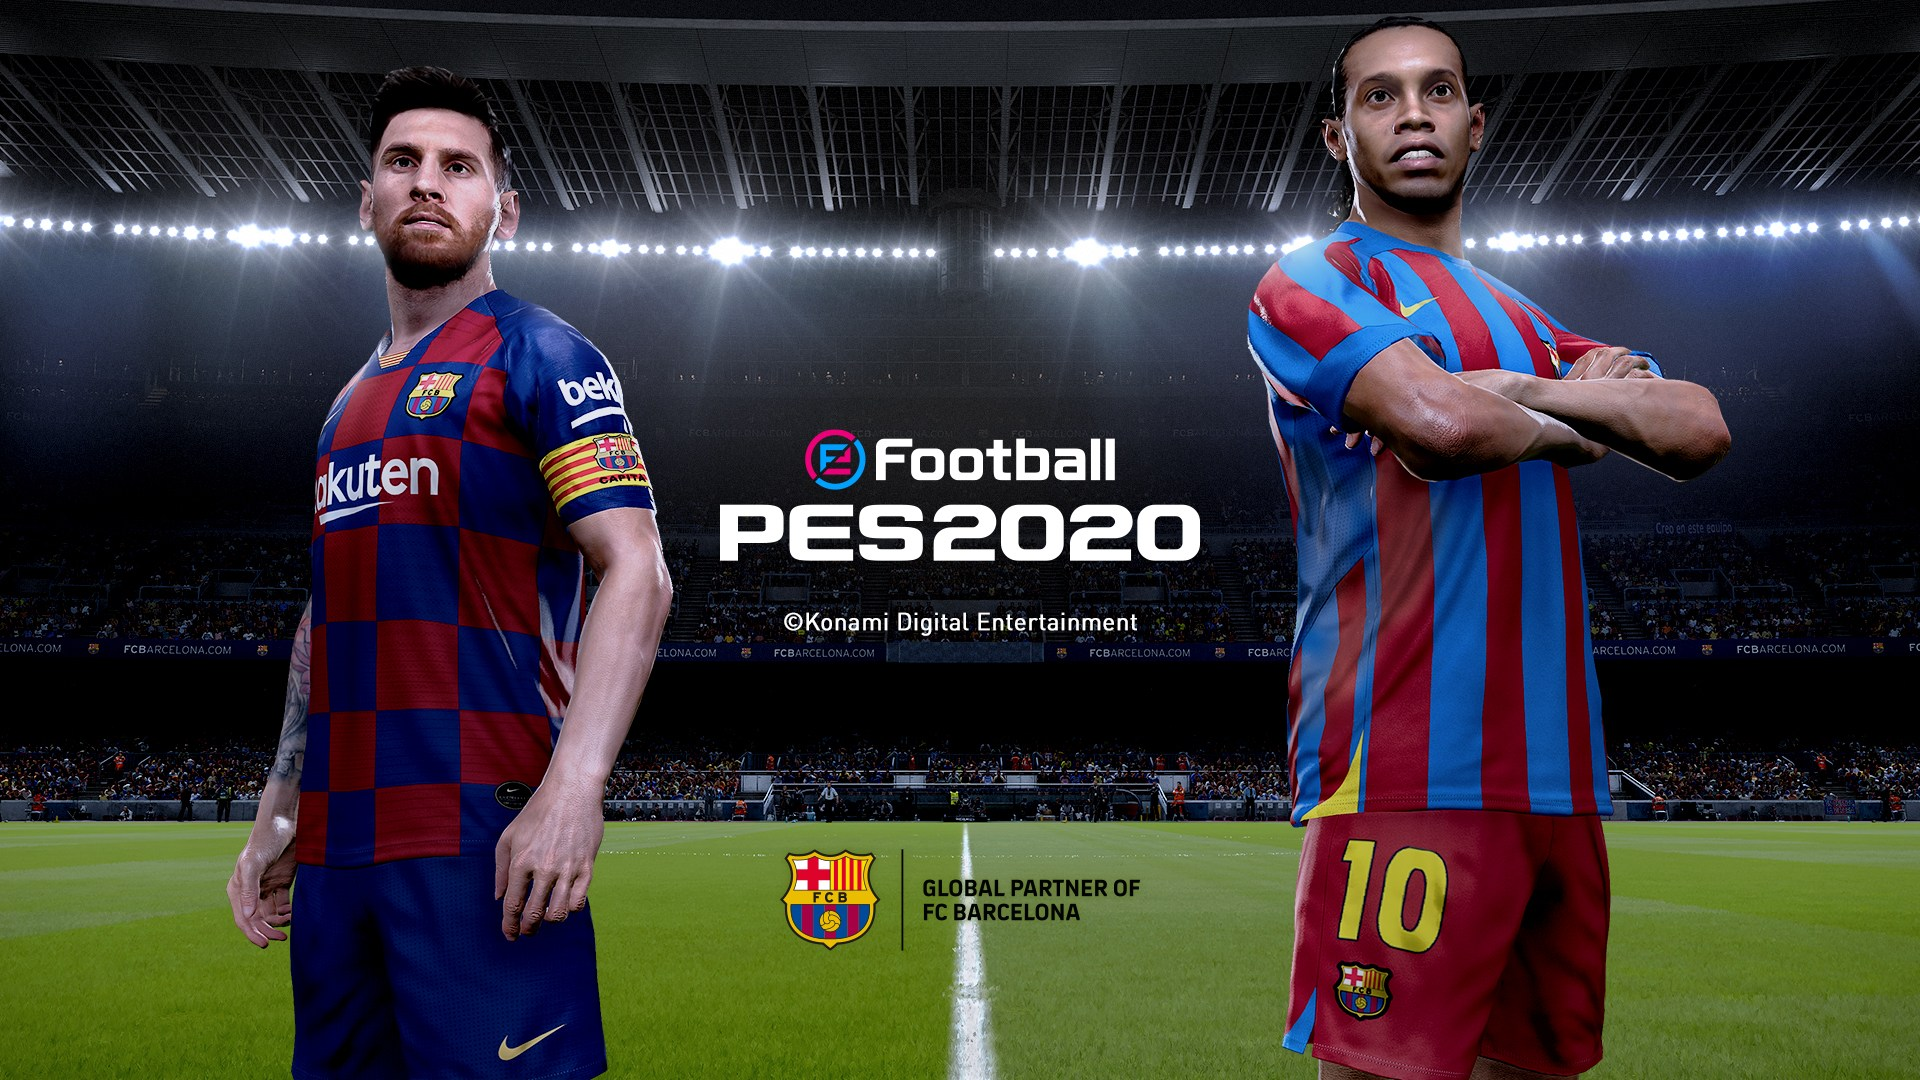 eFootball PES 2020 Demo Is Coming Tomorrow And Here Are The Confirmed Teams, Game Modes, And What To Expect